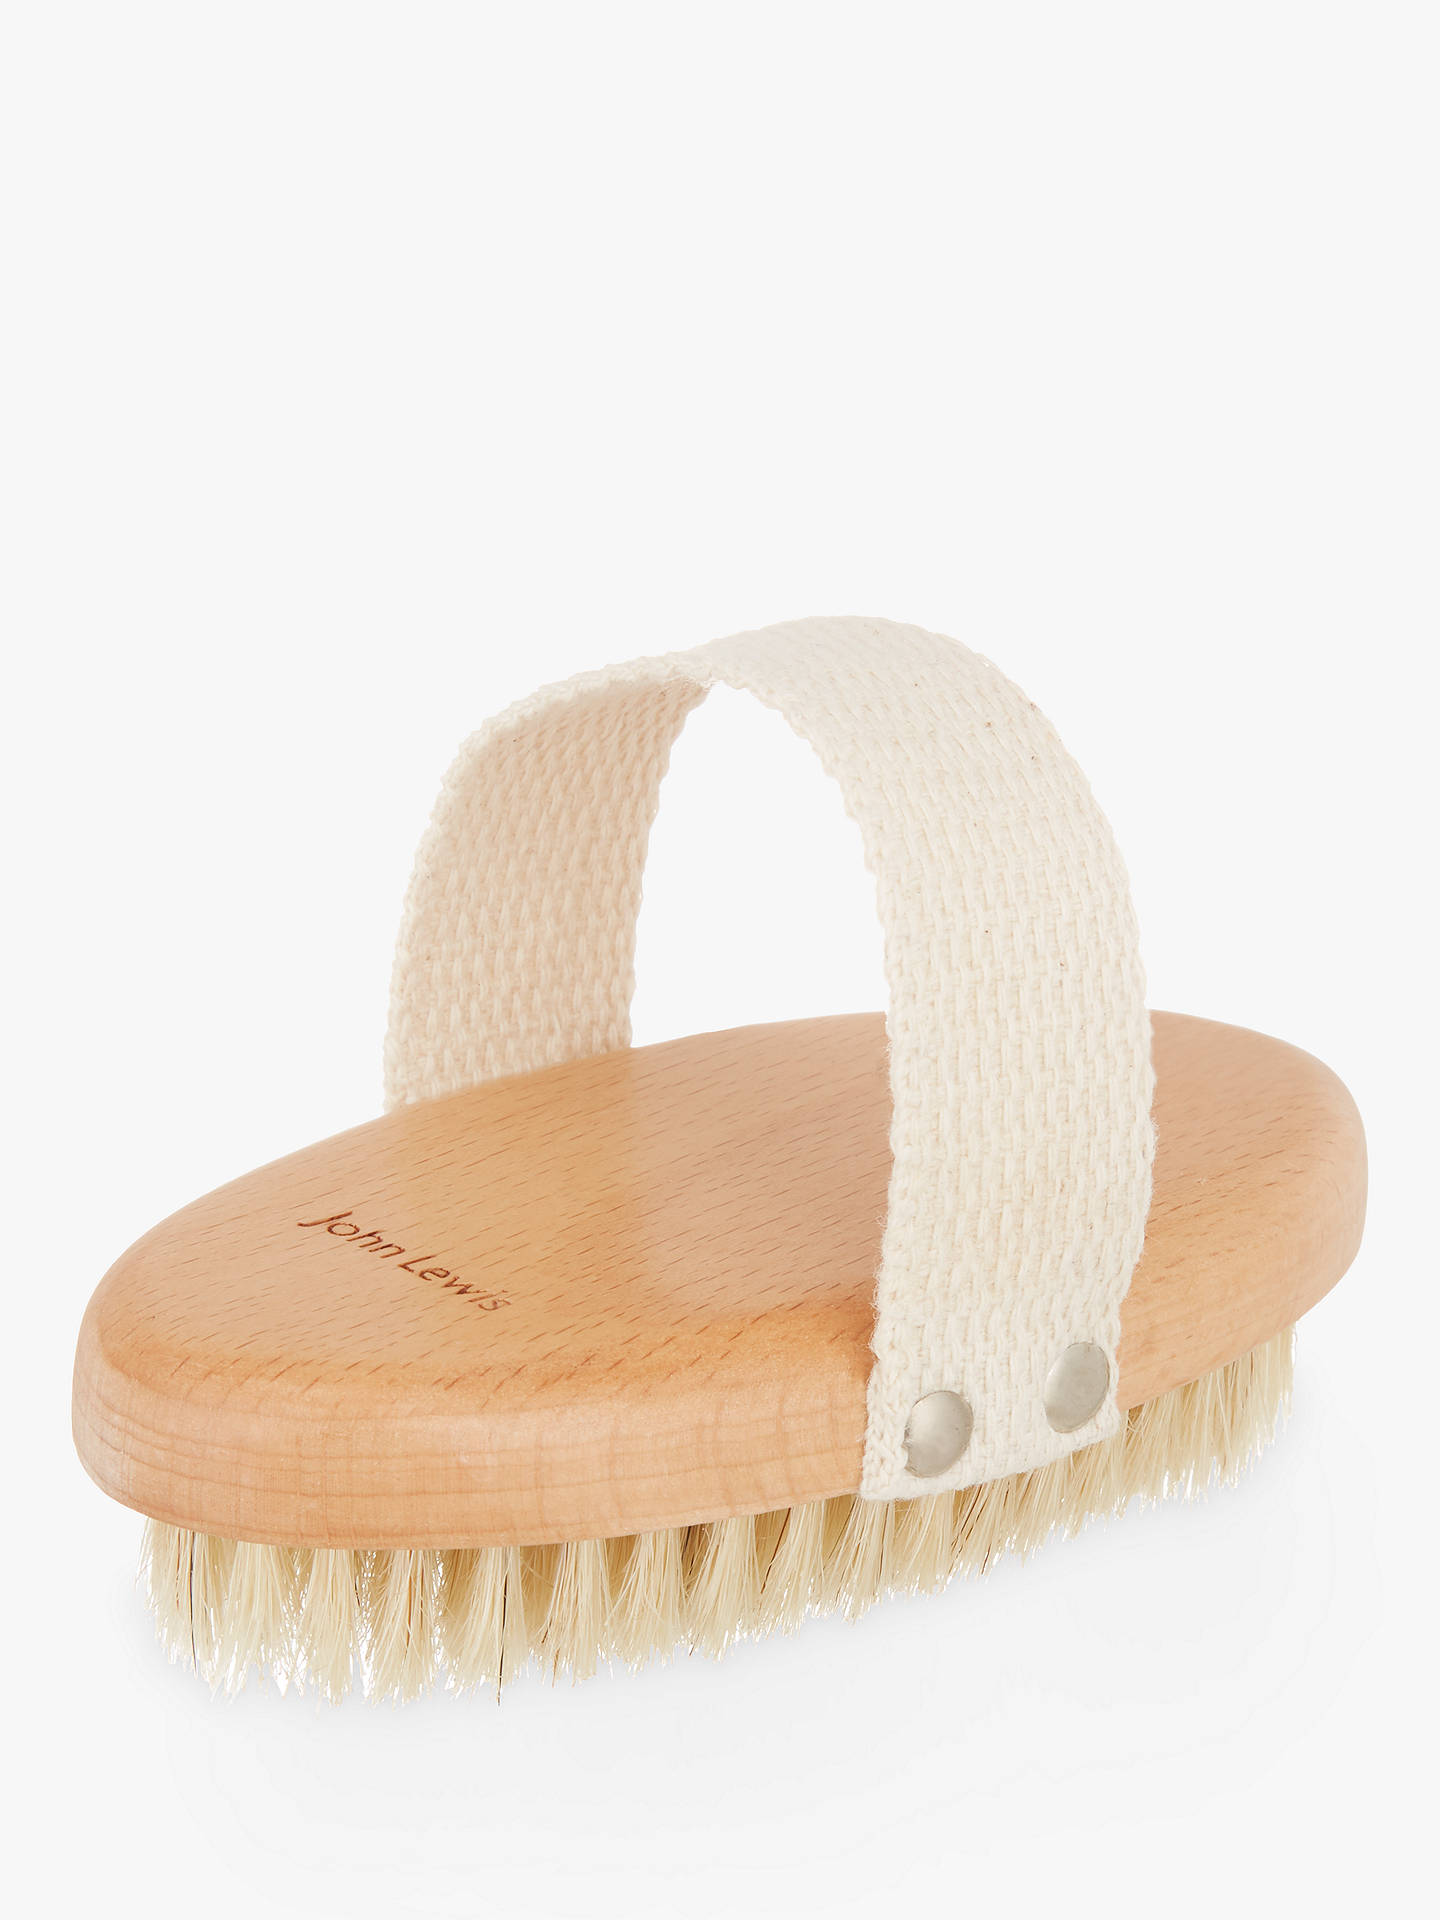 BuyCroft Collection Handheld Beech Bristle Brush, Natural Online at johnlewis.com